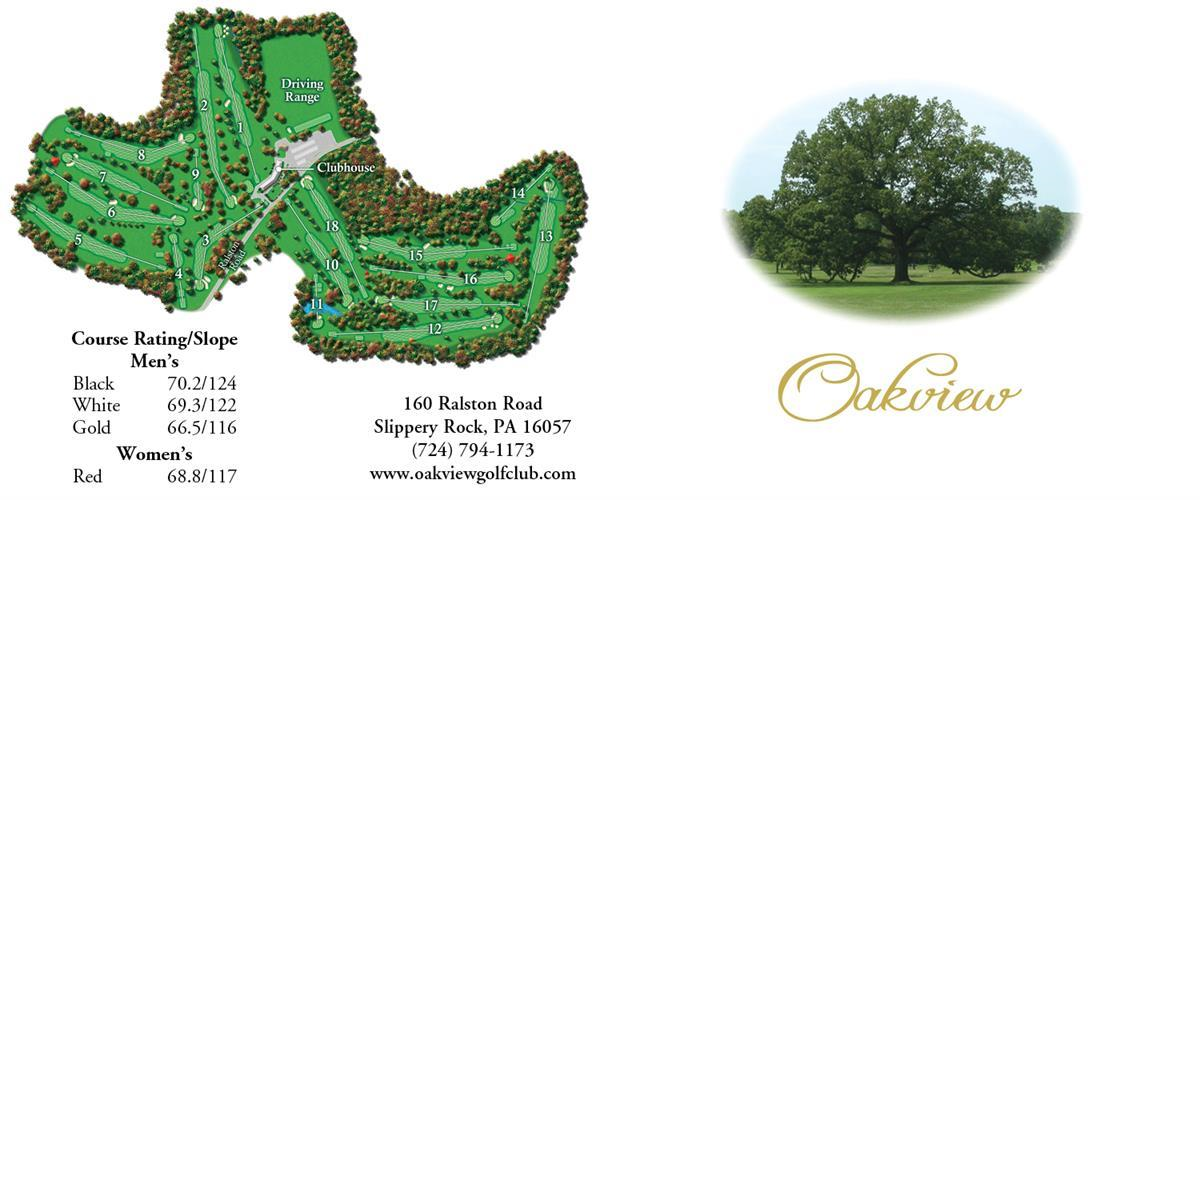 2016 memberships golfing Oakview Golf Club Pittsburgh Slippery Rock PA